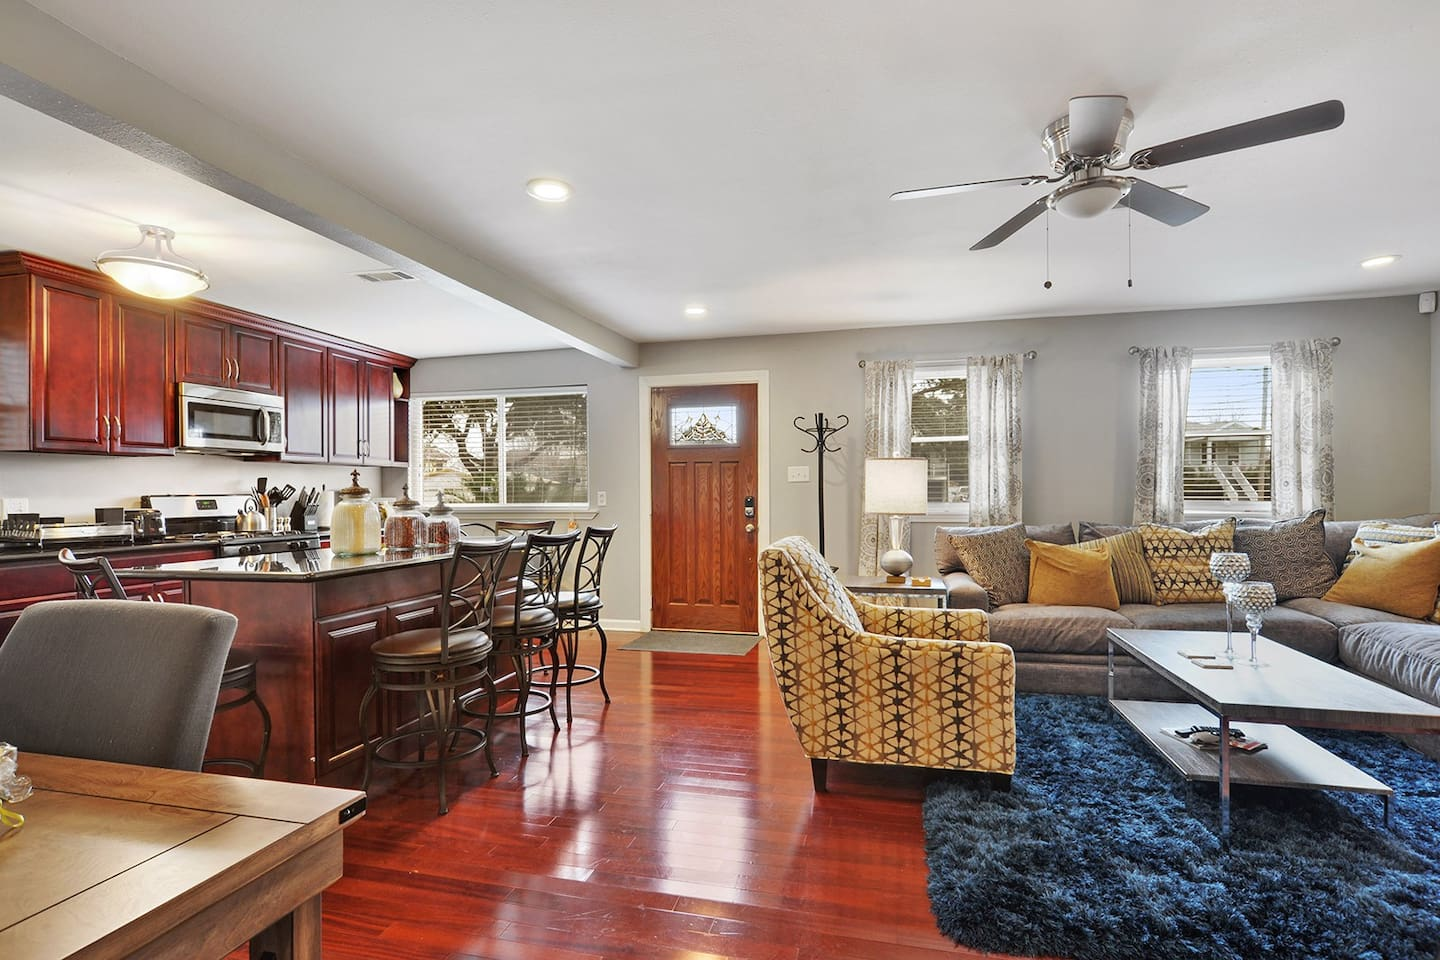 Don't miss out on this New Orleans Gentilly Gem! Kitchen opens to family room for ultimate convenience and large, open space.